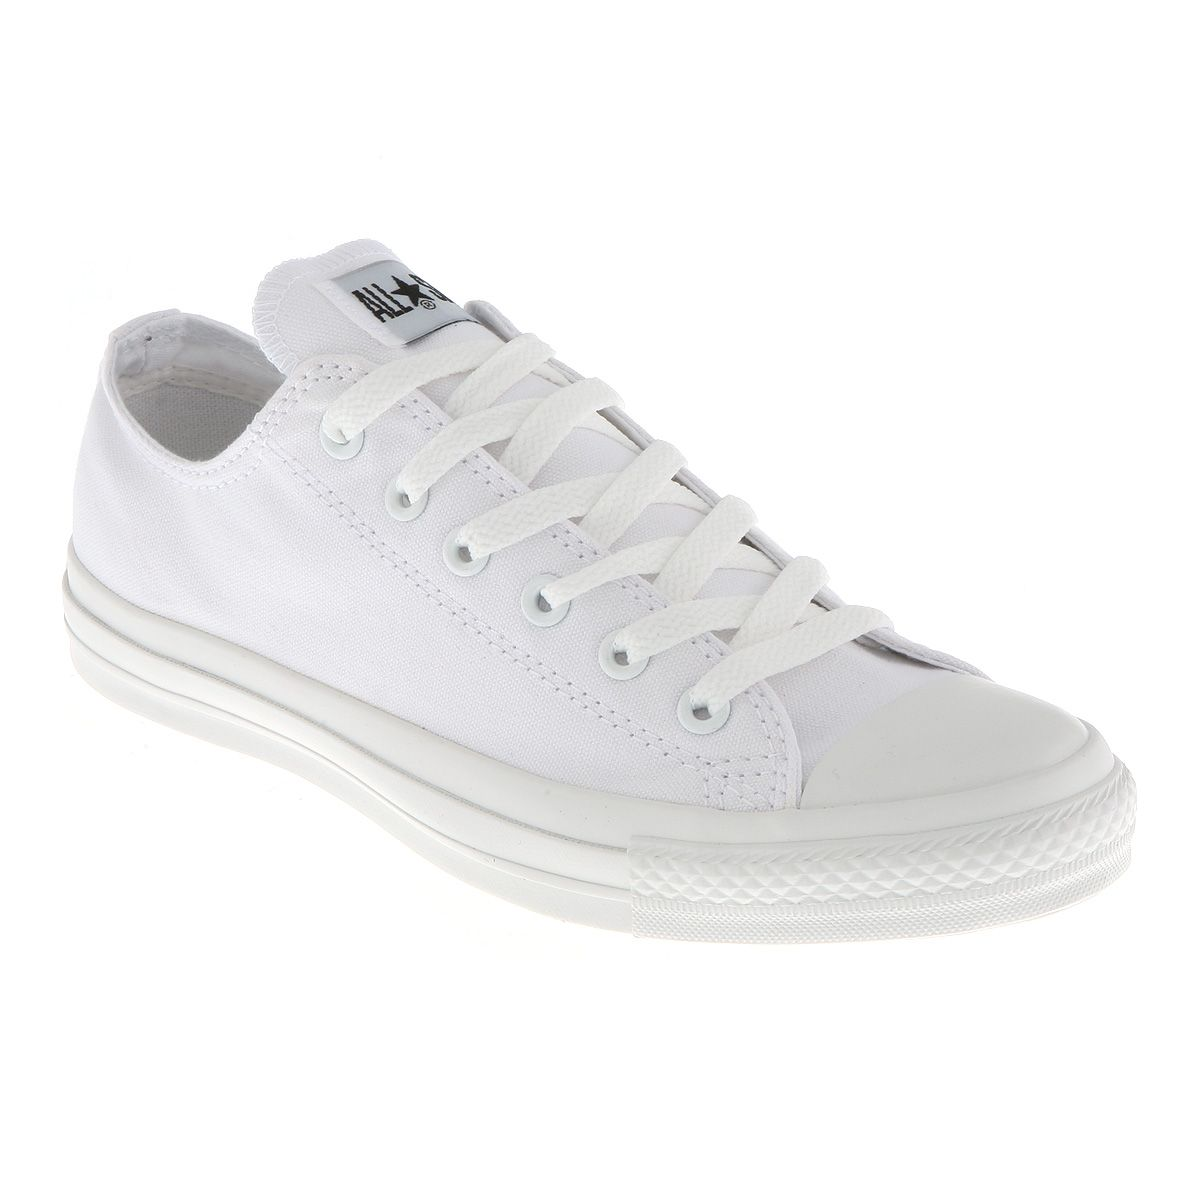 e5c1679e37c Converse ALL STAR OX LOW WHITE MONO CANVAS EXCLUSIVE Shoes - Converse  Trainers - Office Shoes